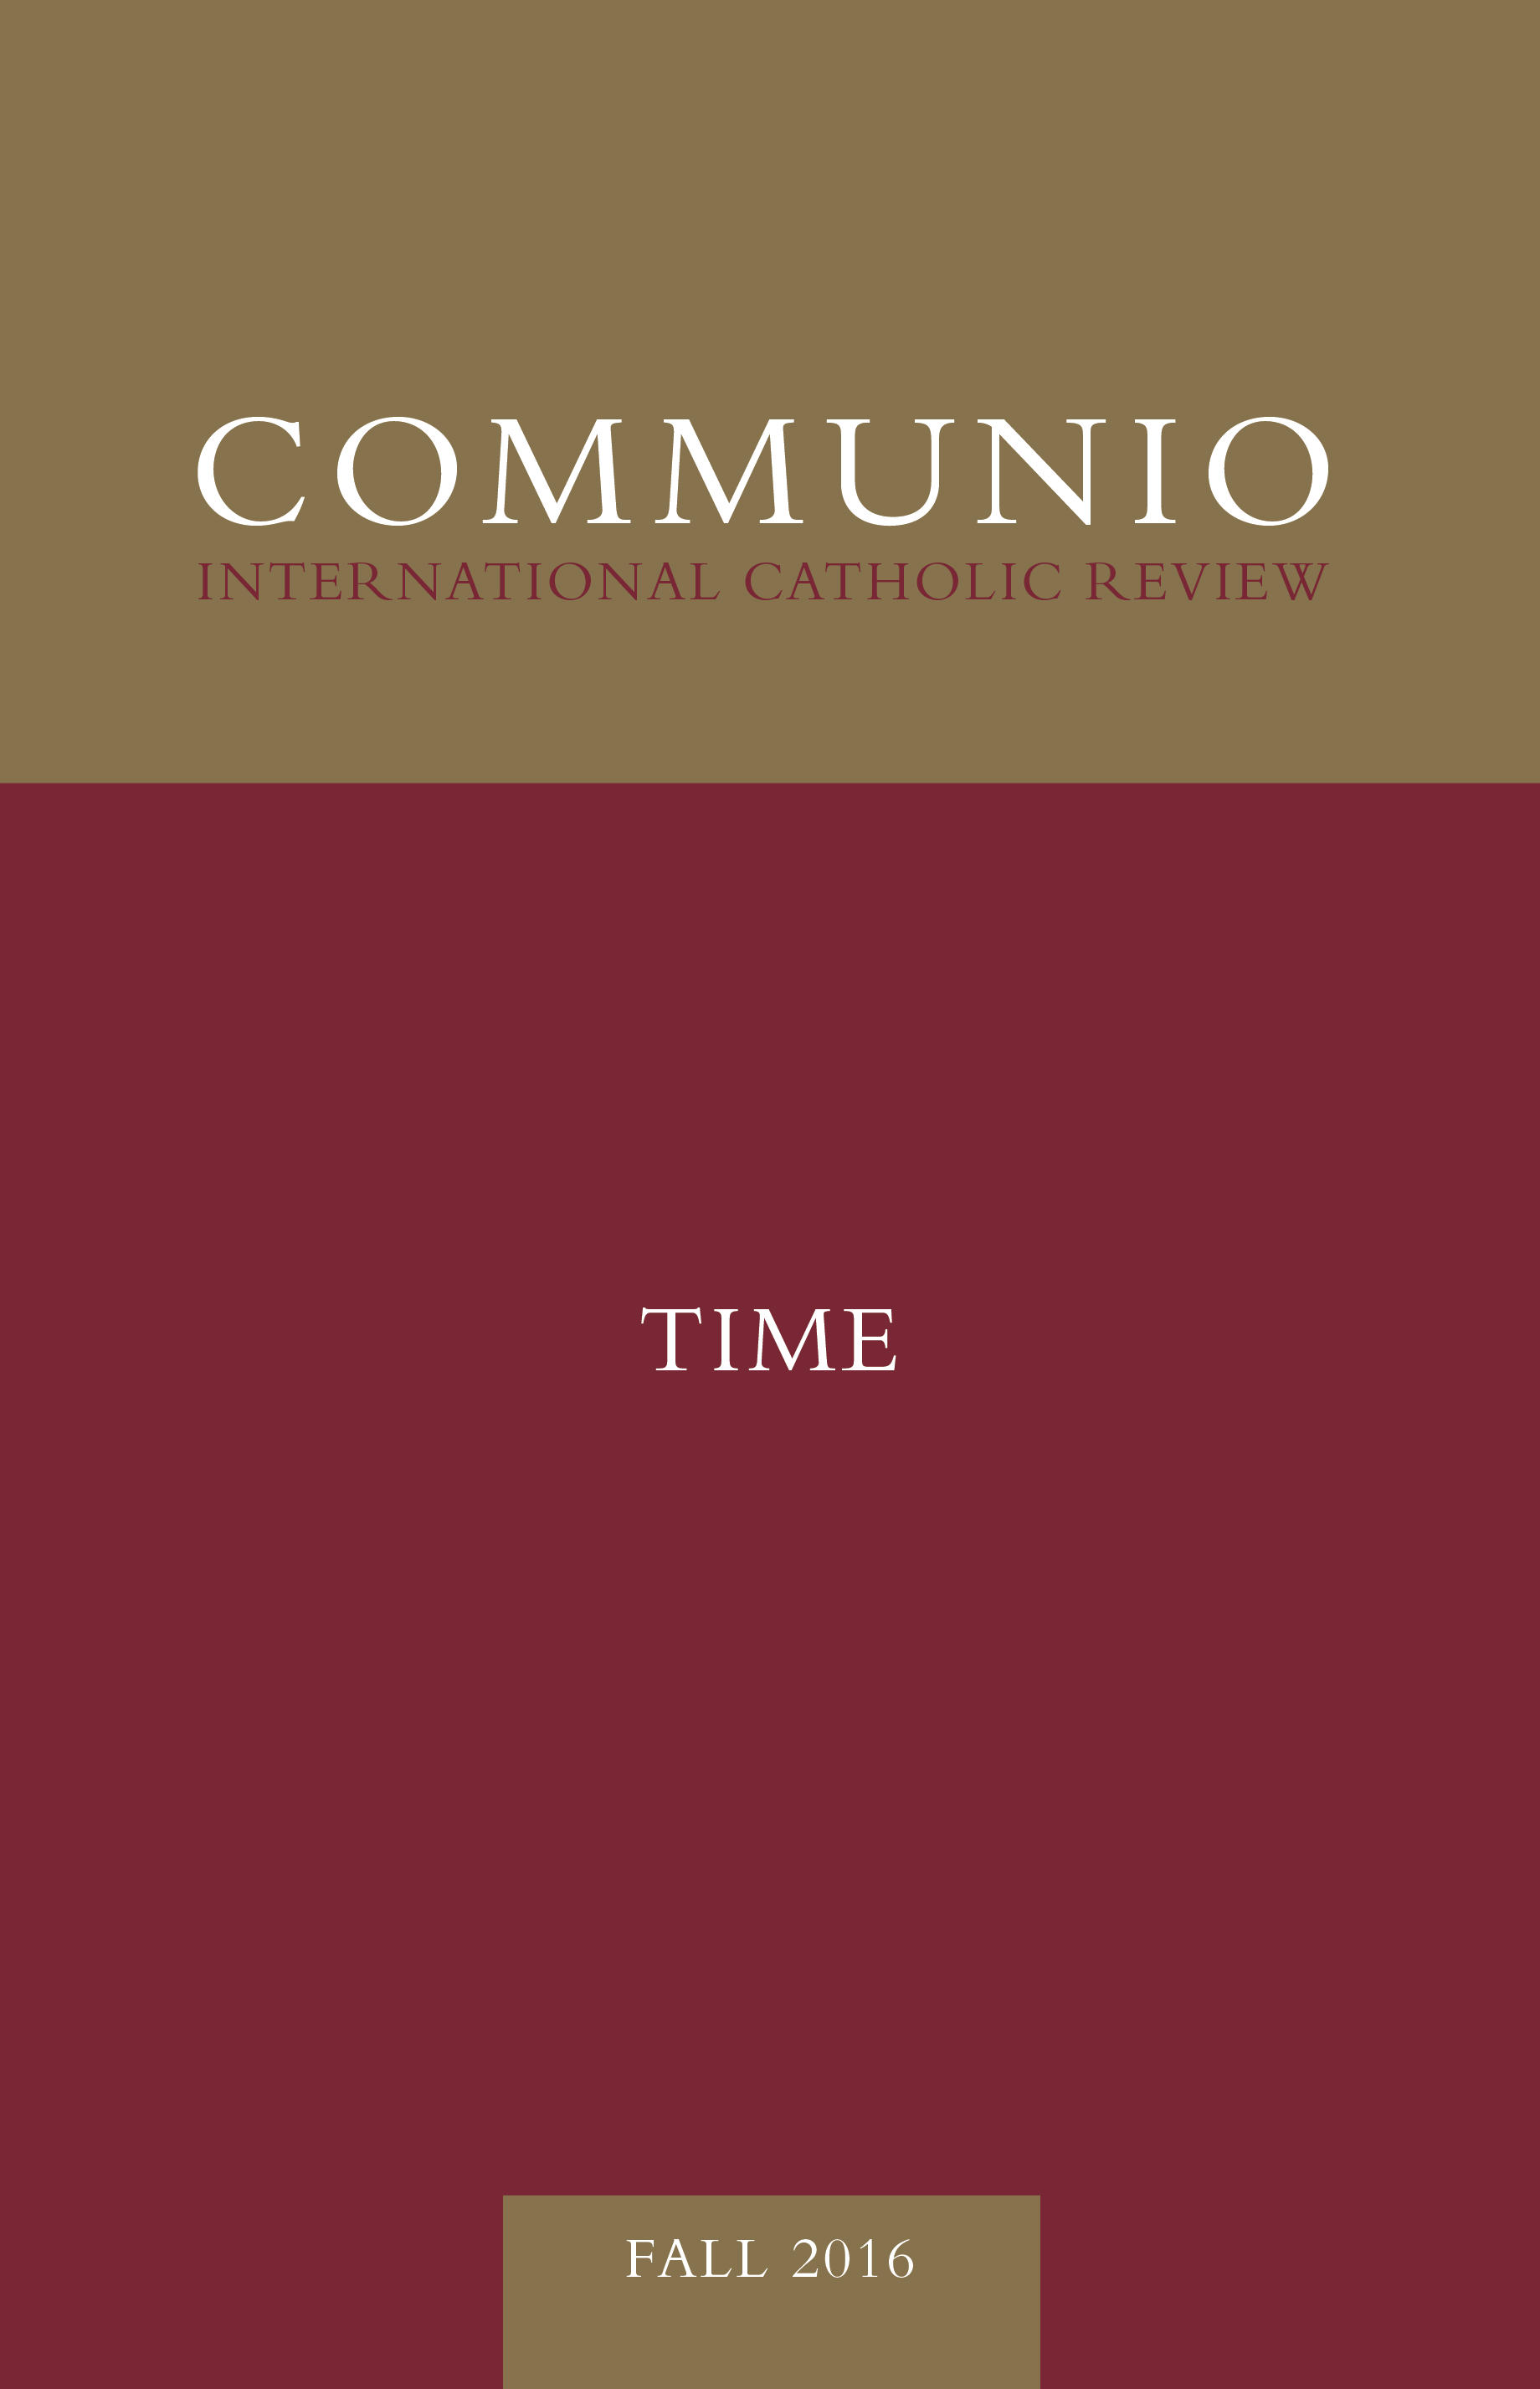 Communio - Fall 2016 - Time